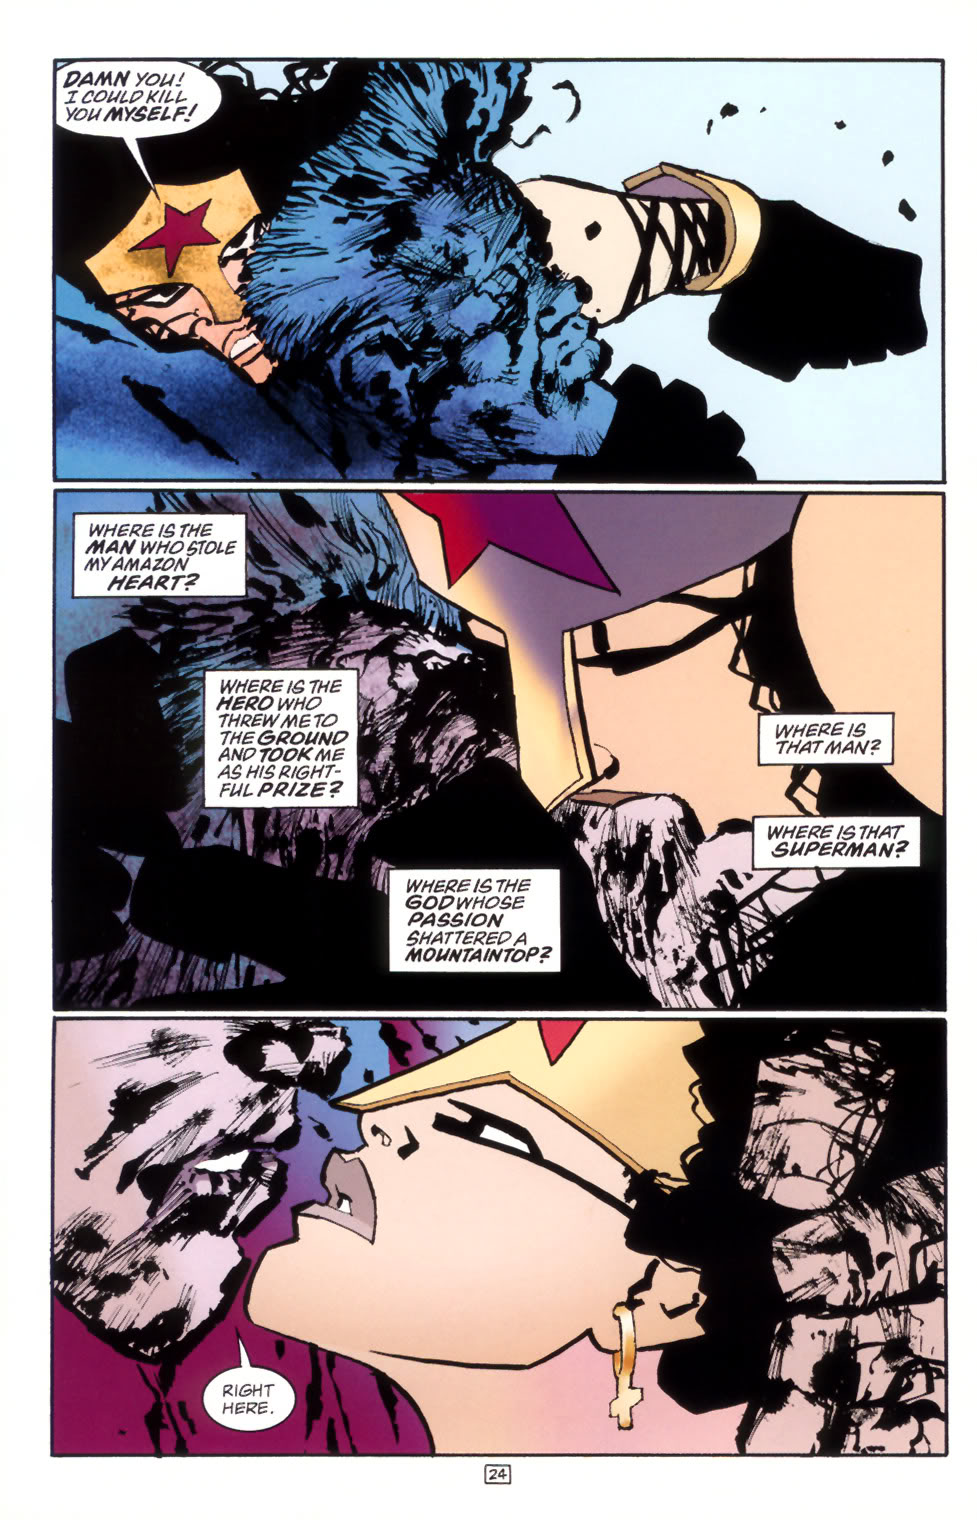 graphic nyc frank miller part on pastiche directing and the lara at stake superman finally finds the courage to become super once more strikes again can just as easily be called the man of steel returns